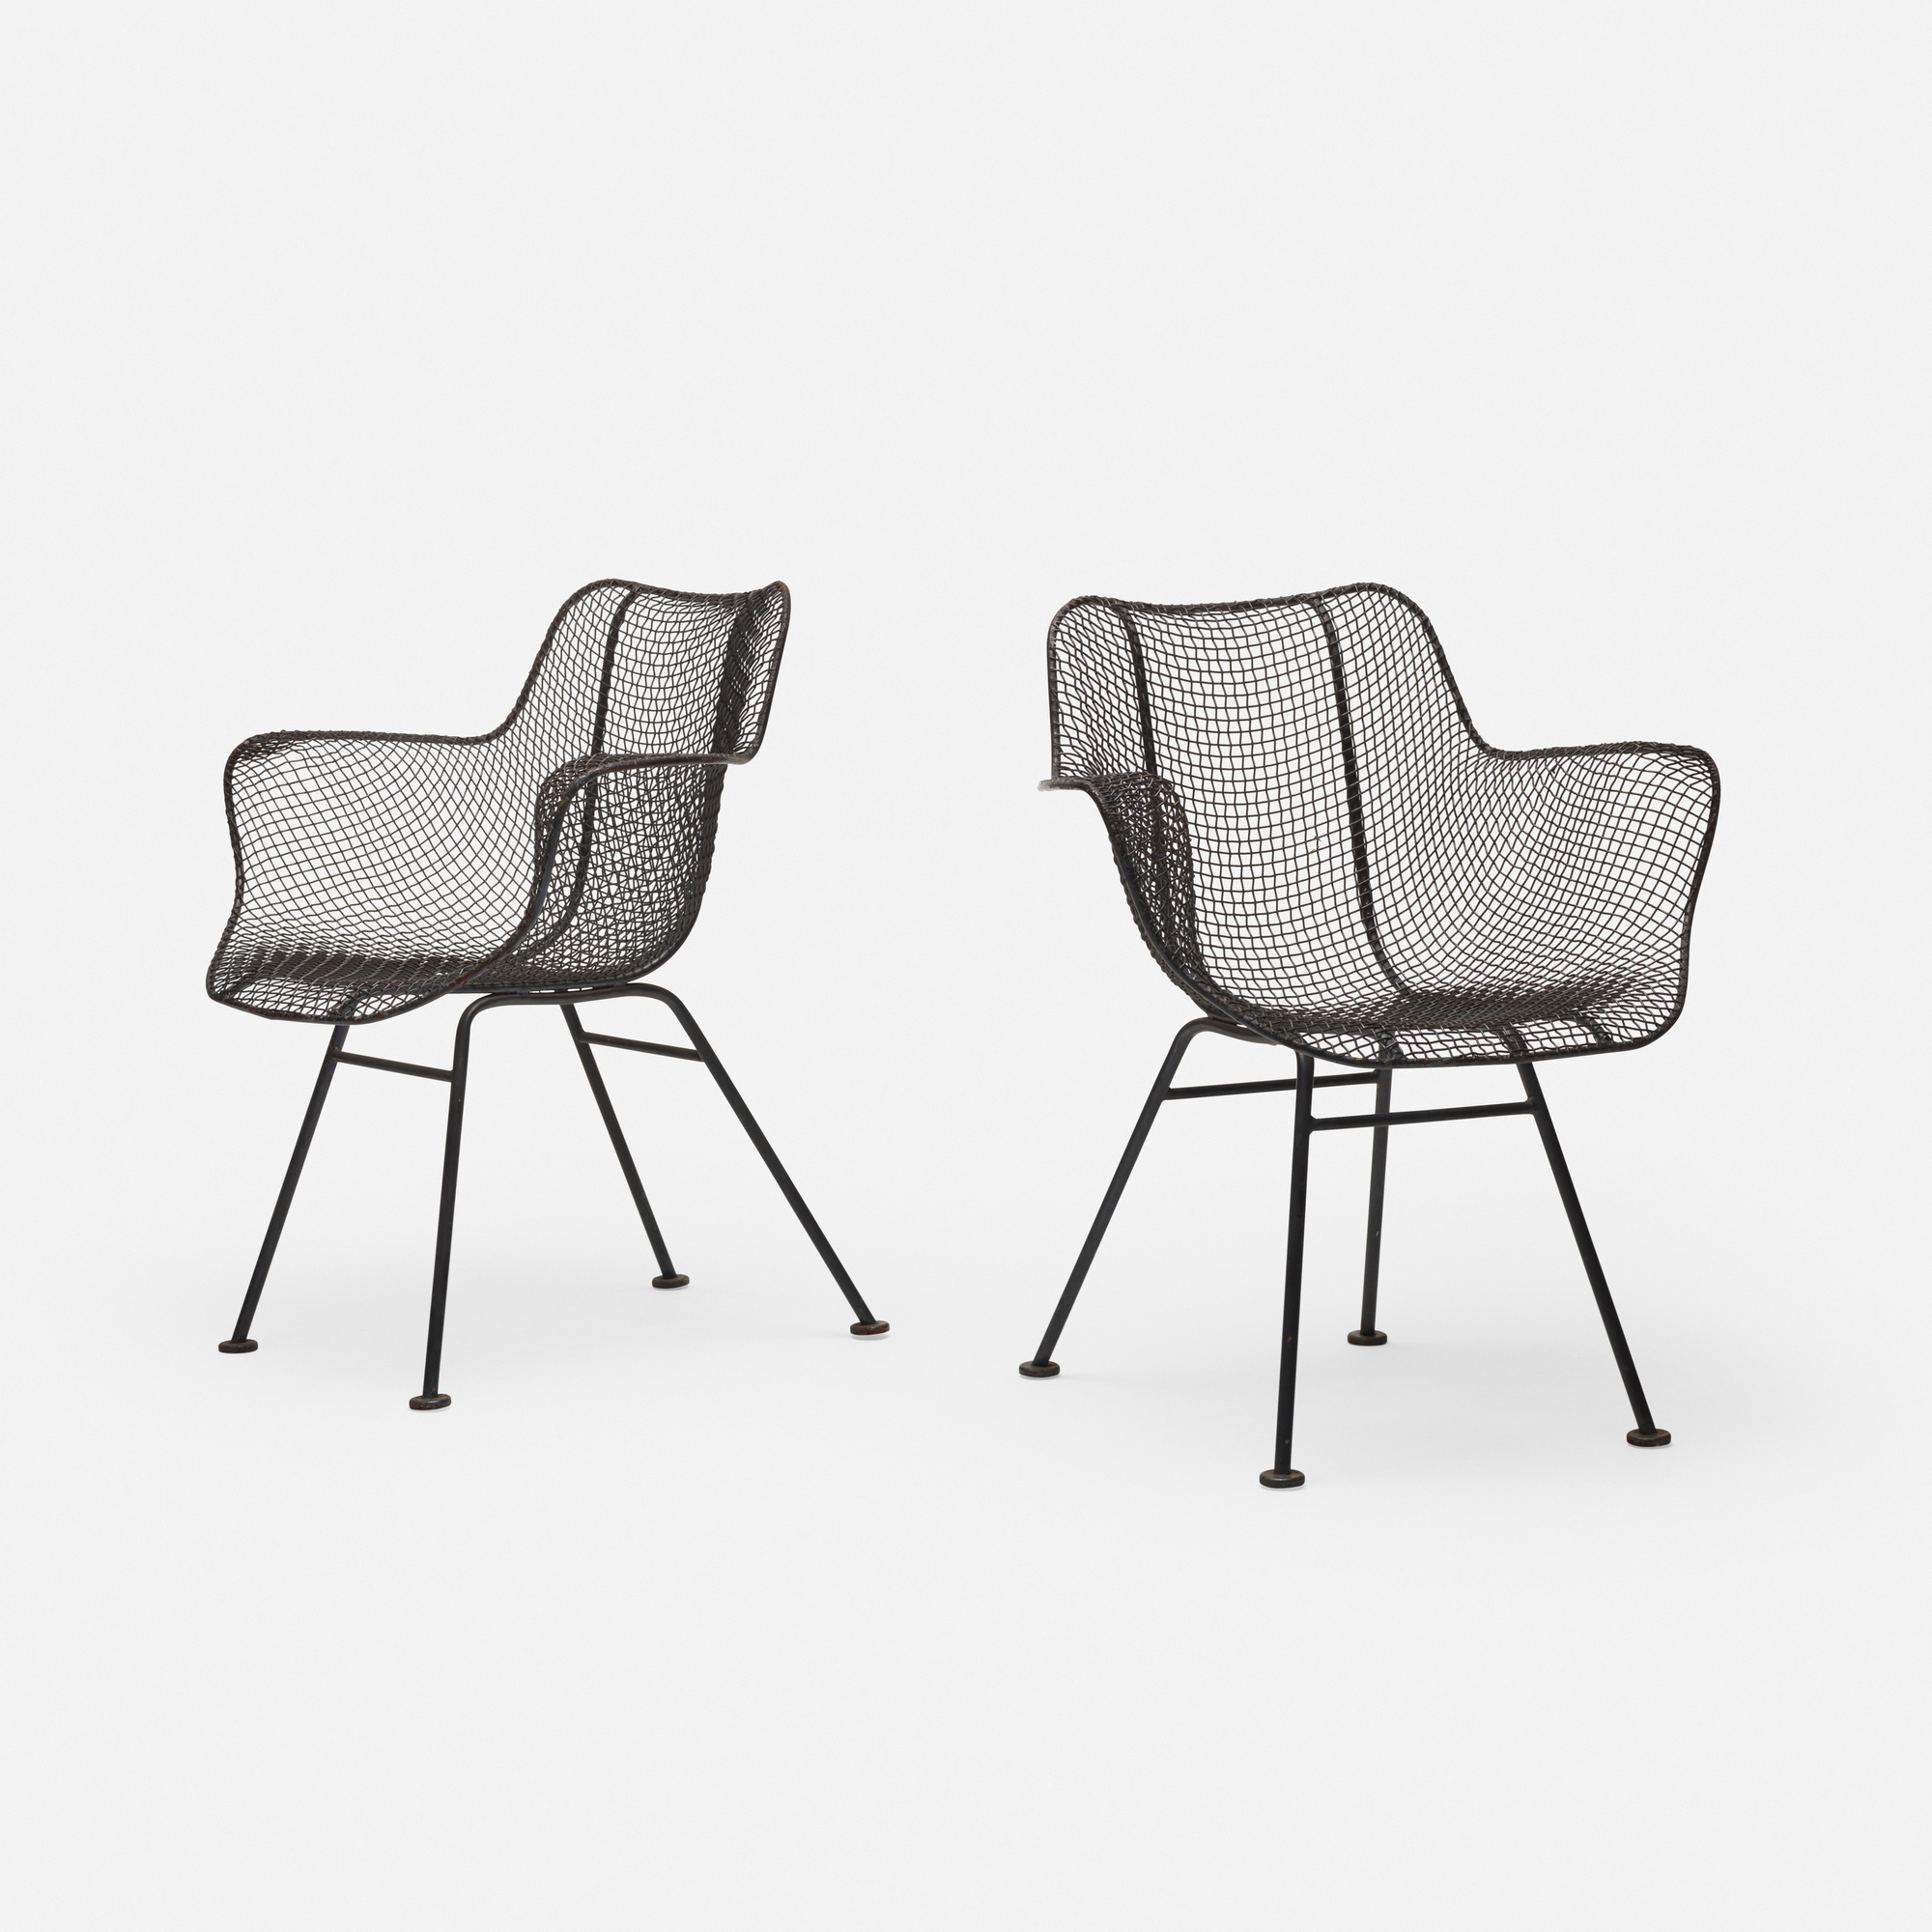 375: Russell Woodard / Sculptura armchairs, pair (1 of 2)